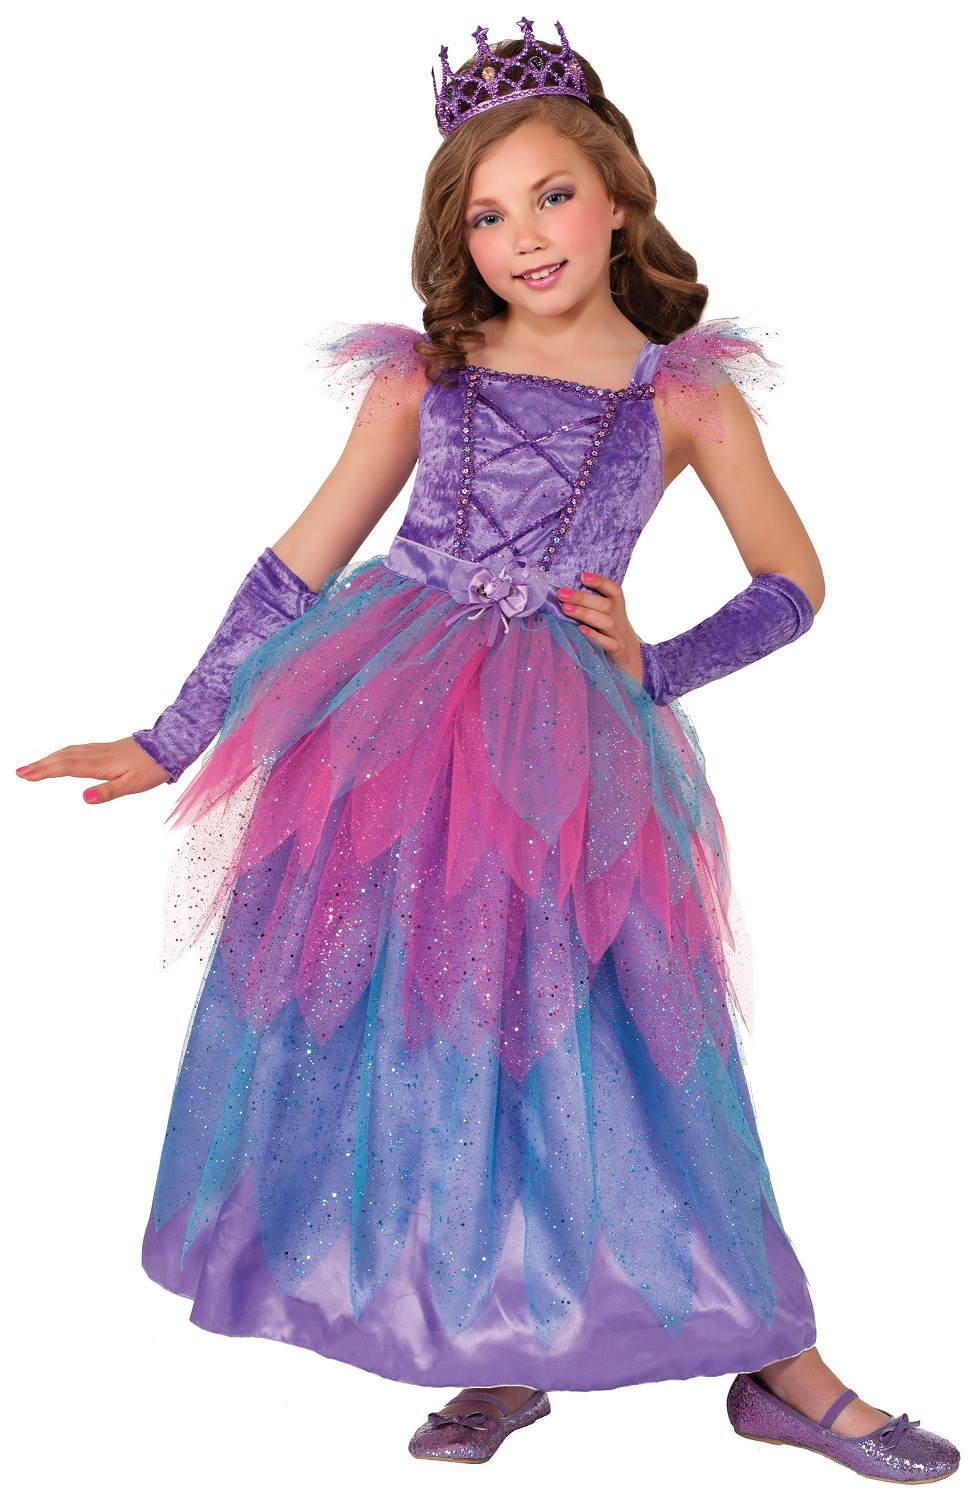 Pixie Princess Fairy Purple Fancy Dress Up Halloween Deluxe Child Costume Gown by Forum Novelties